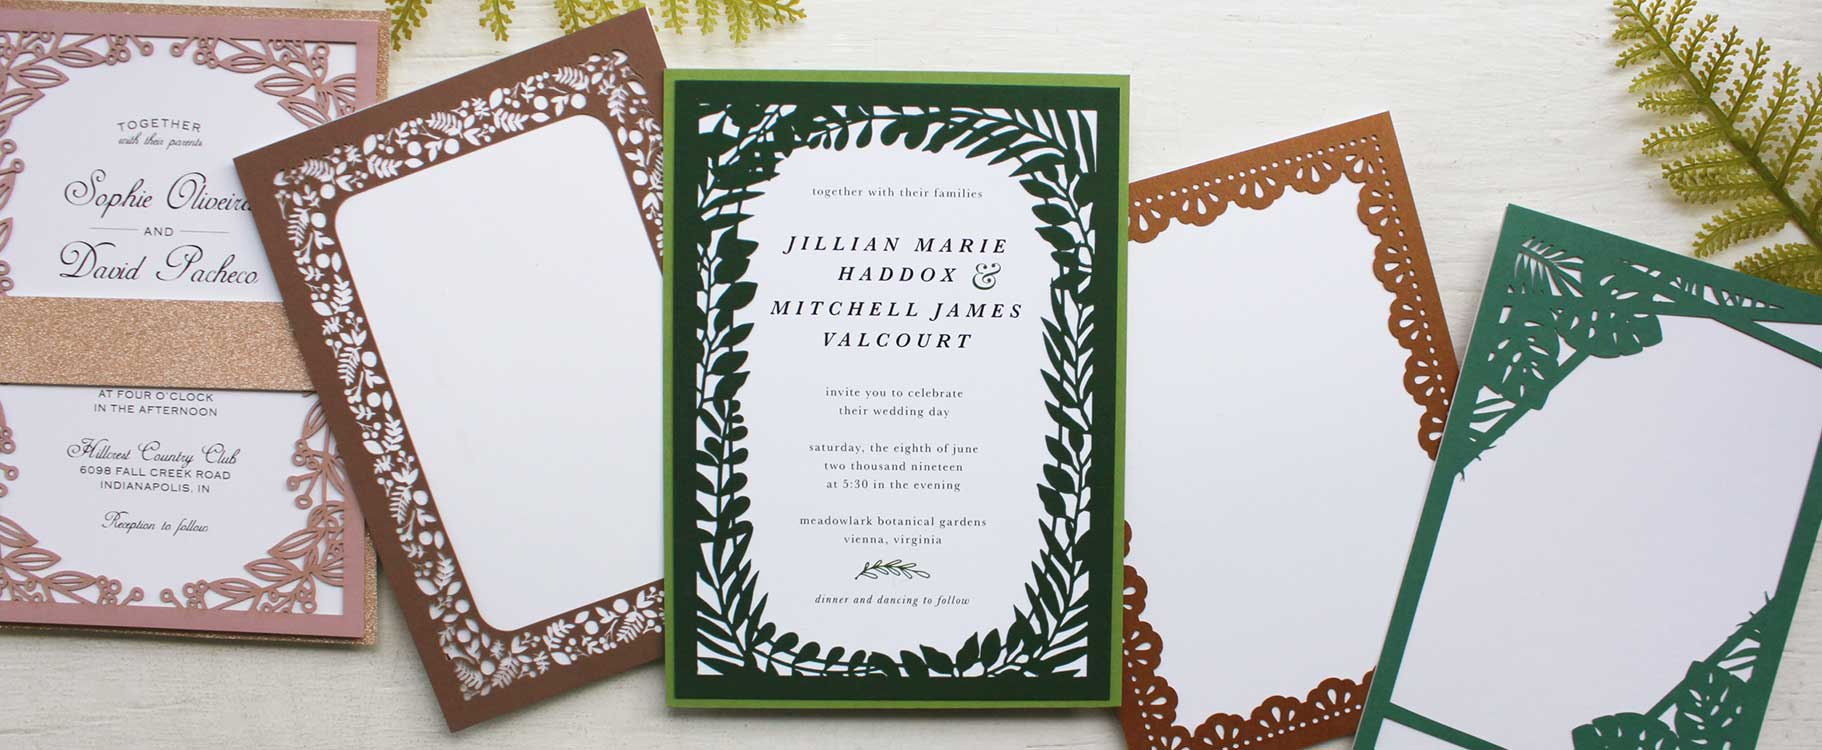 431f0d056b Highlight your wedding invitation theme with a custom laser cut frame.